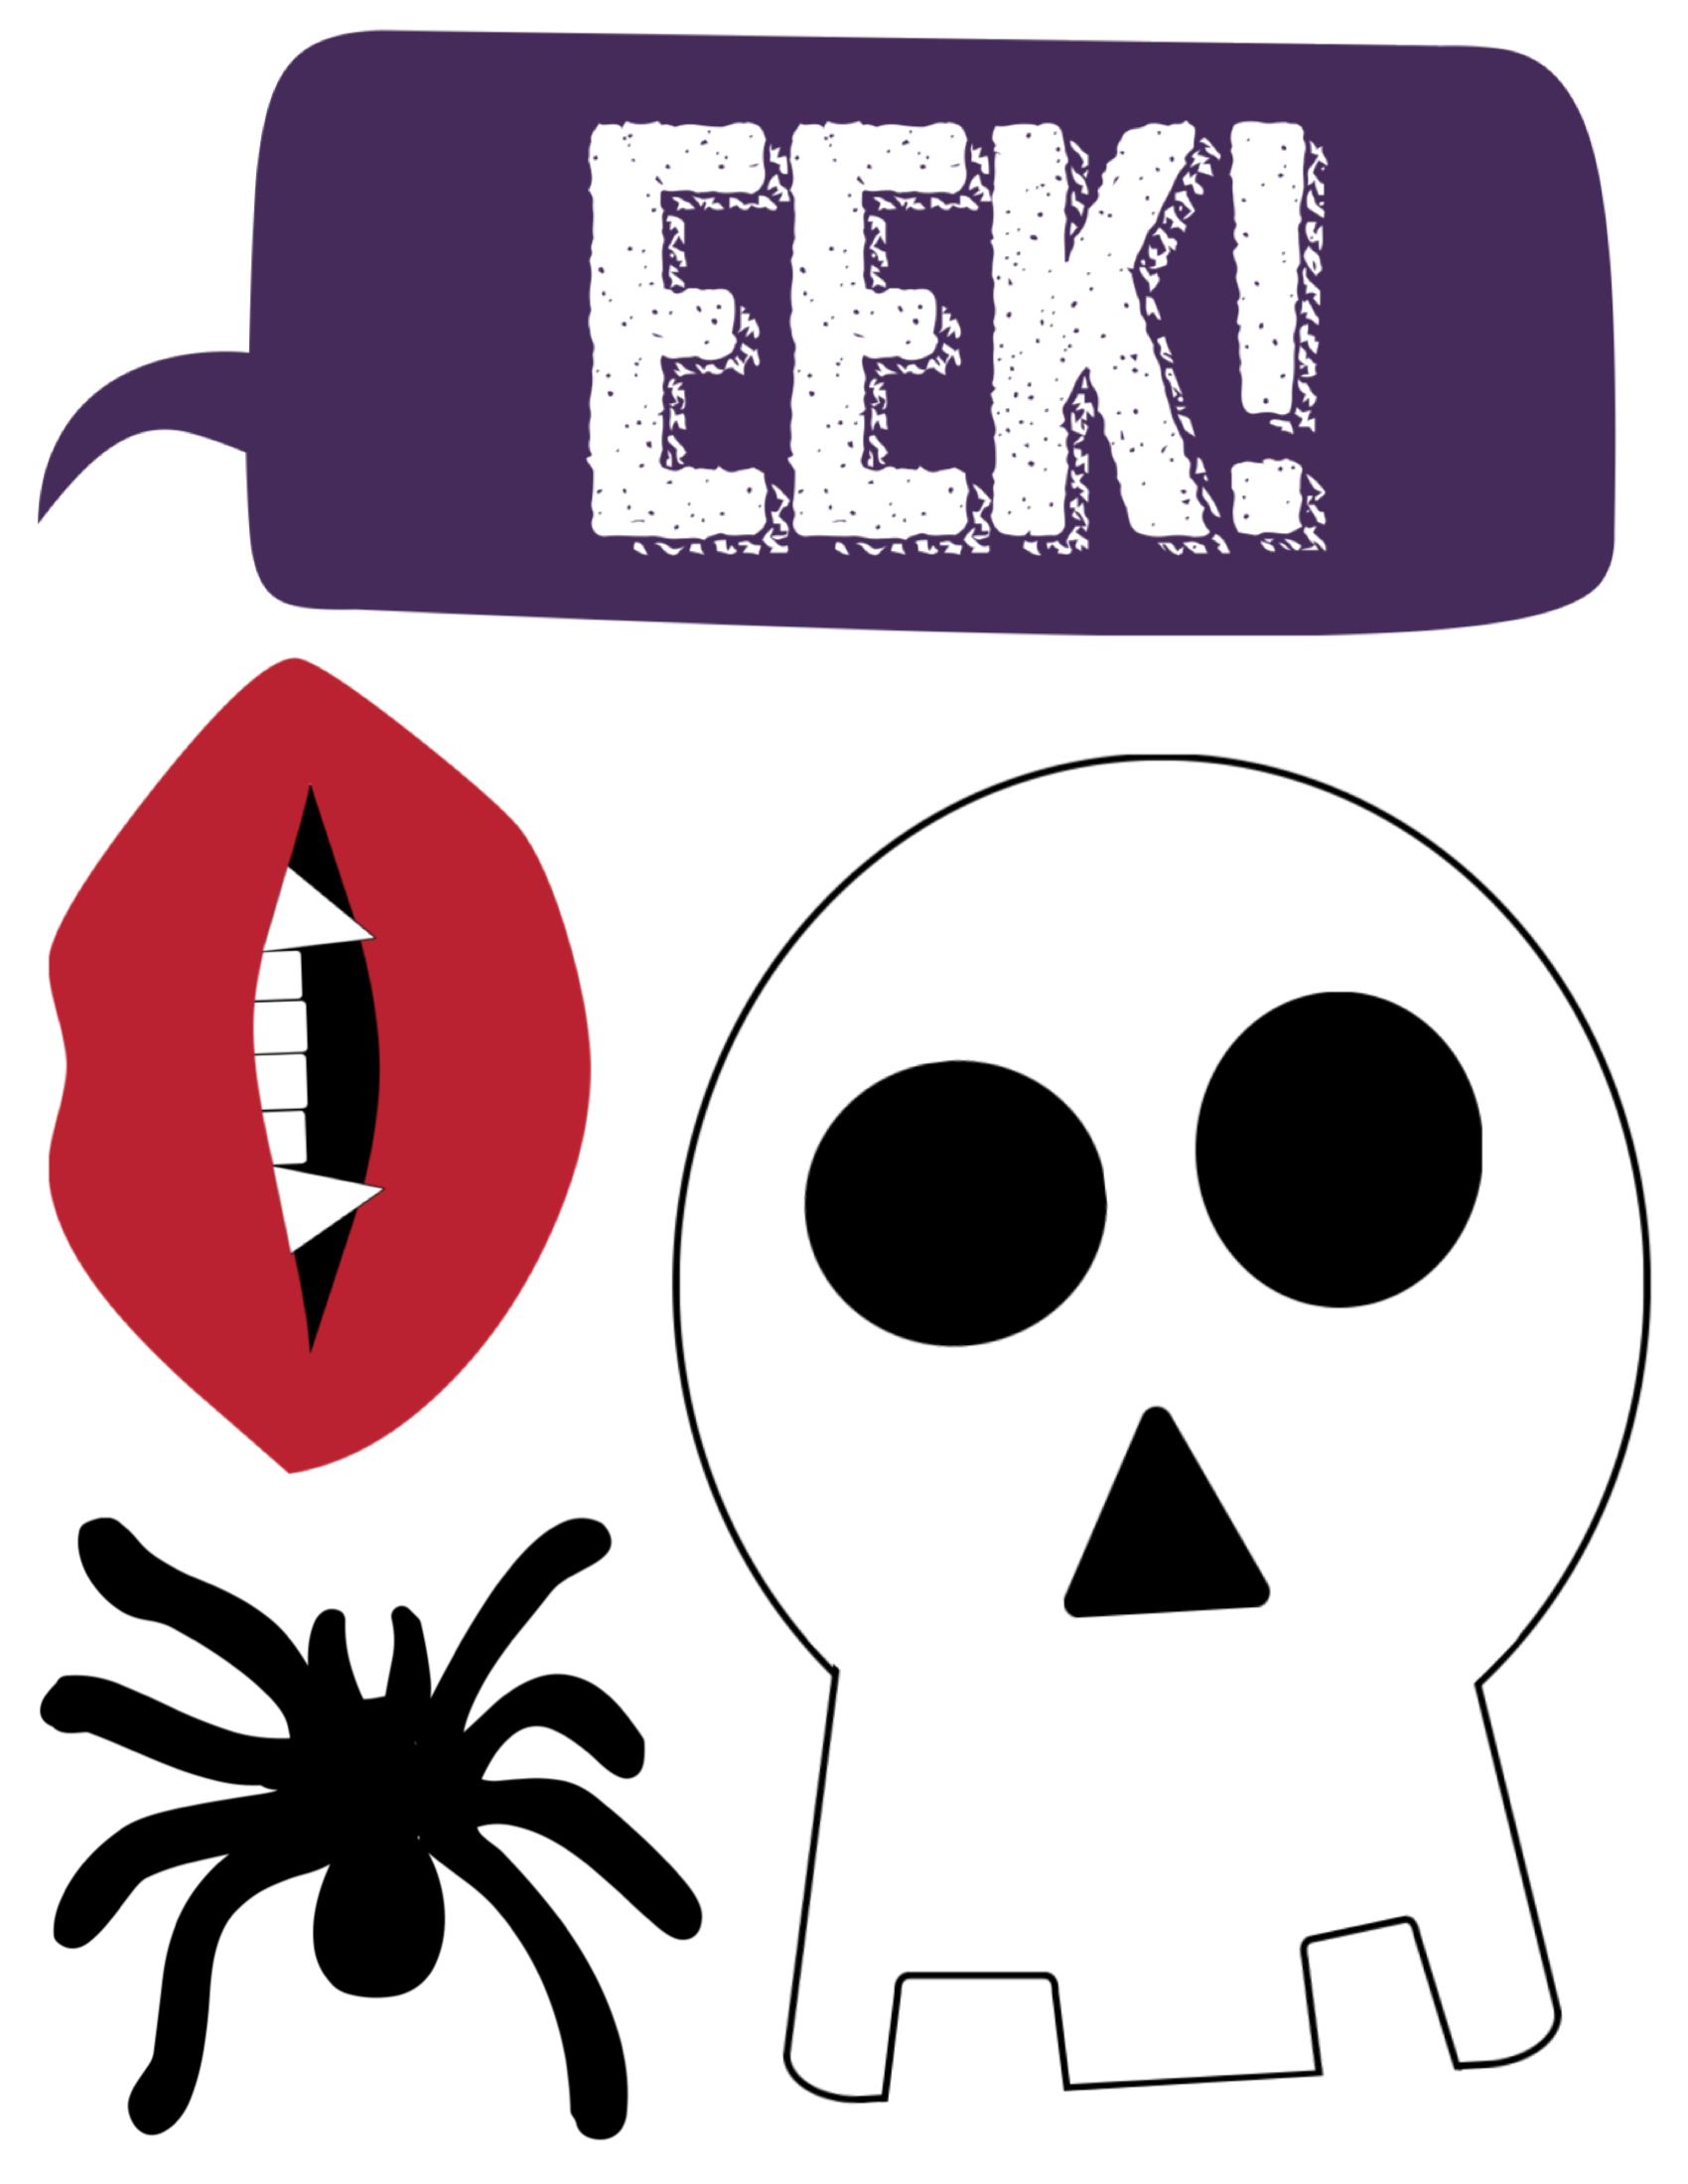 image regarding Halloween Photo Booth Props Printable Free called Absolutely free Printable Halloween Picture Booth - Paper Path Style and design